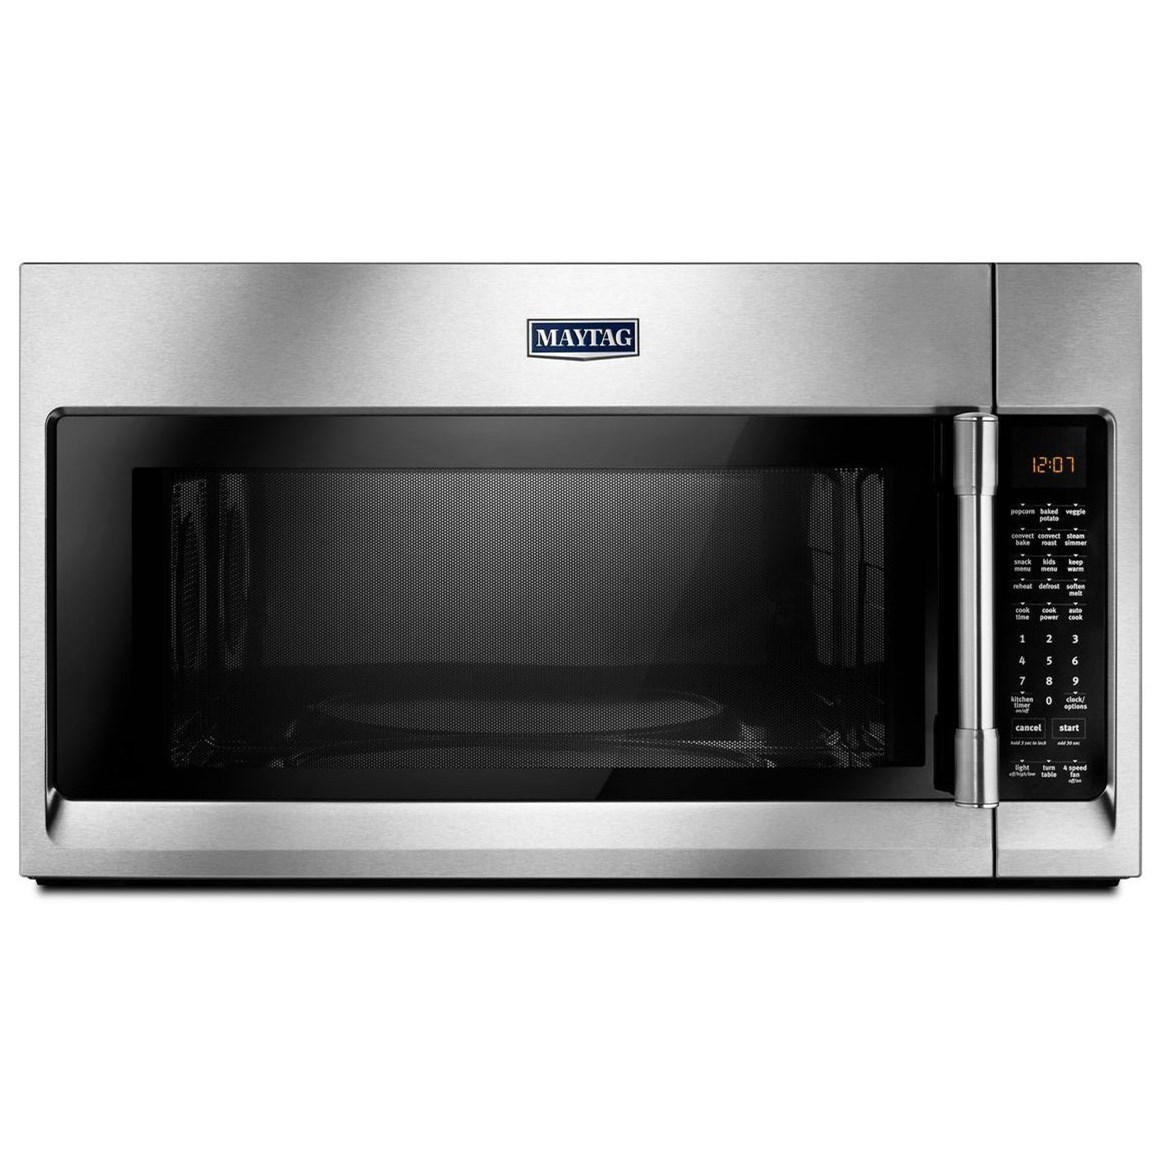 Microwaves Over-The-Range Microwave With Convection by Maytag at Pedigo Furniture